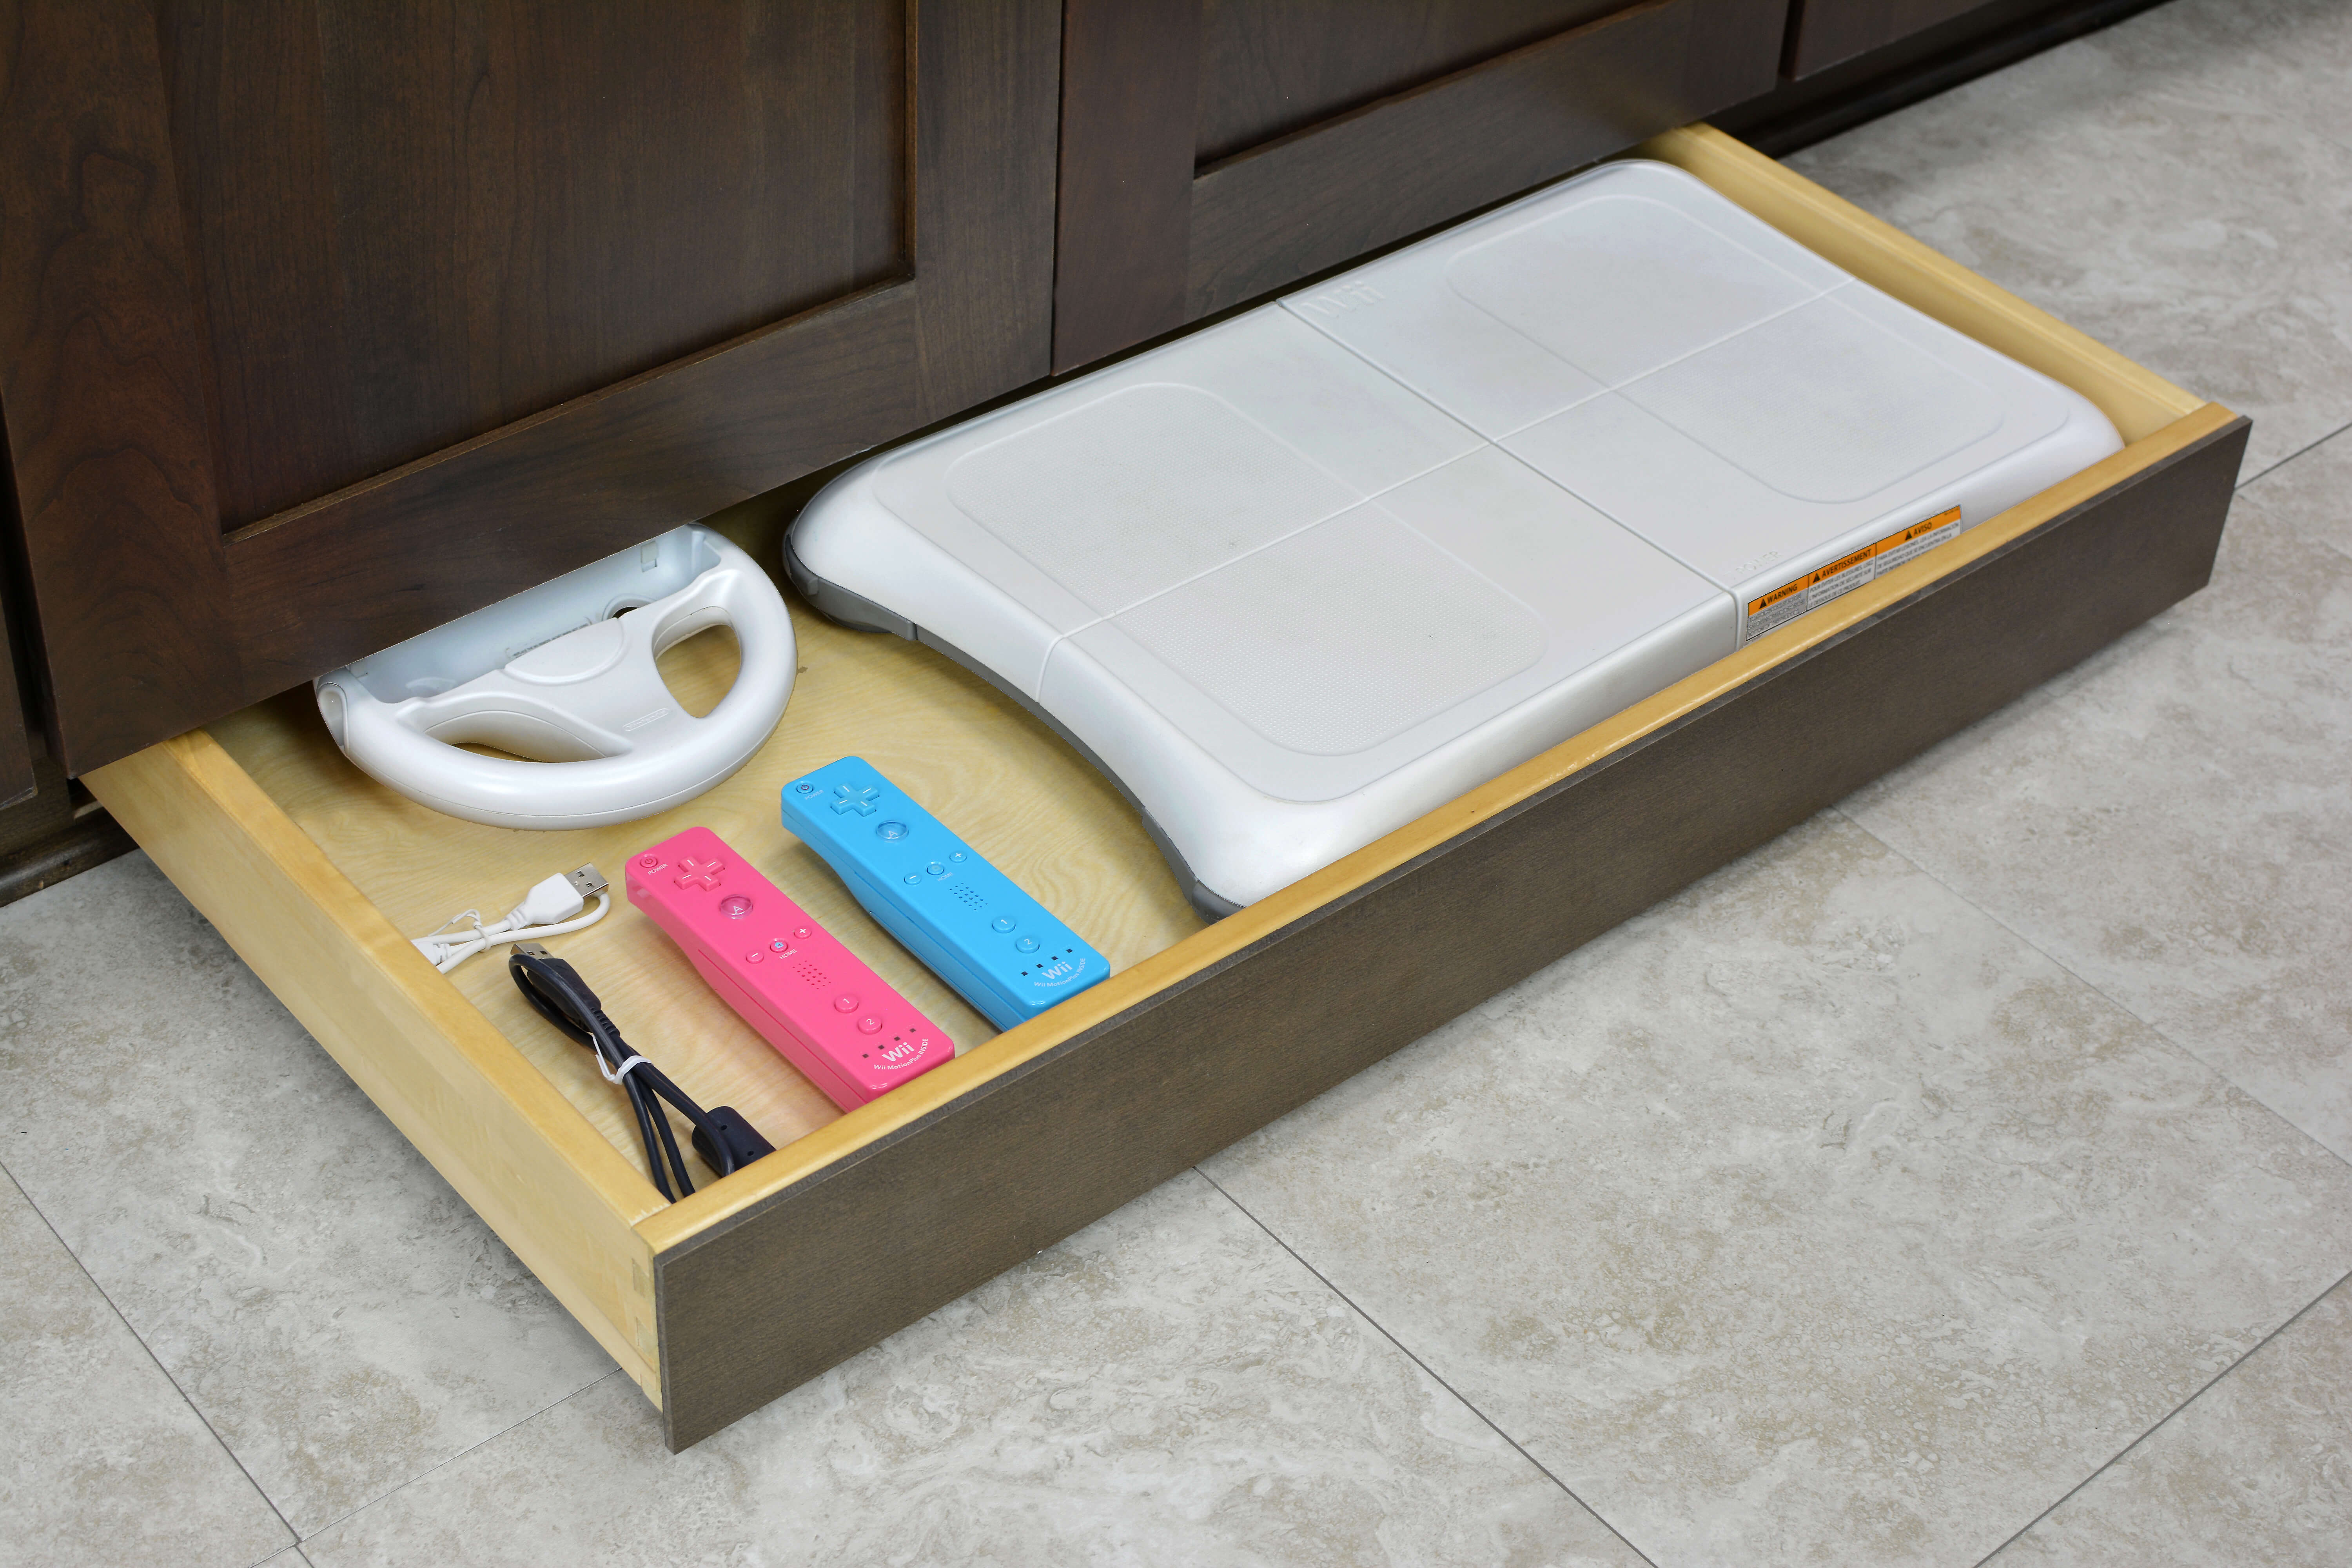 Miscellaneous items can find a home in a Dura Supreme Toe-Kick Drawer hidden at the foot of your entertainment center cabinets. This handy solution can give your gaming controllers and accessories a home, helping your living space clutter-free and your equipment easy to access.